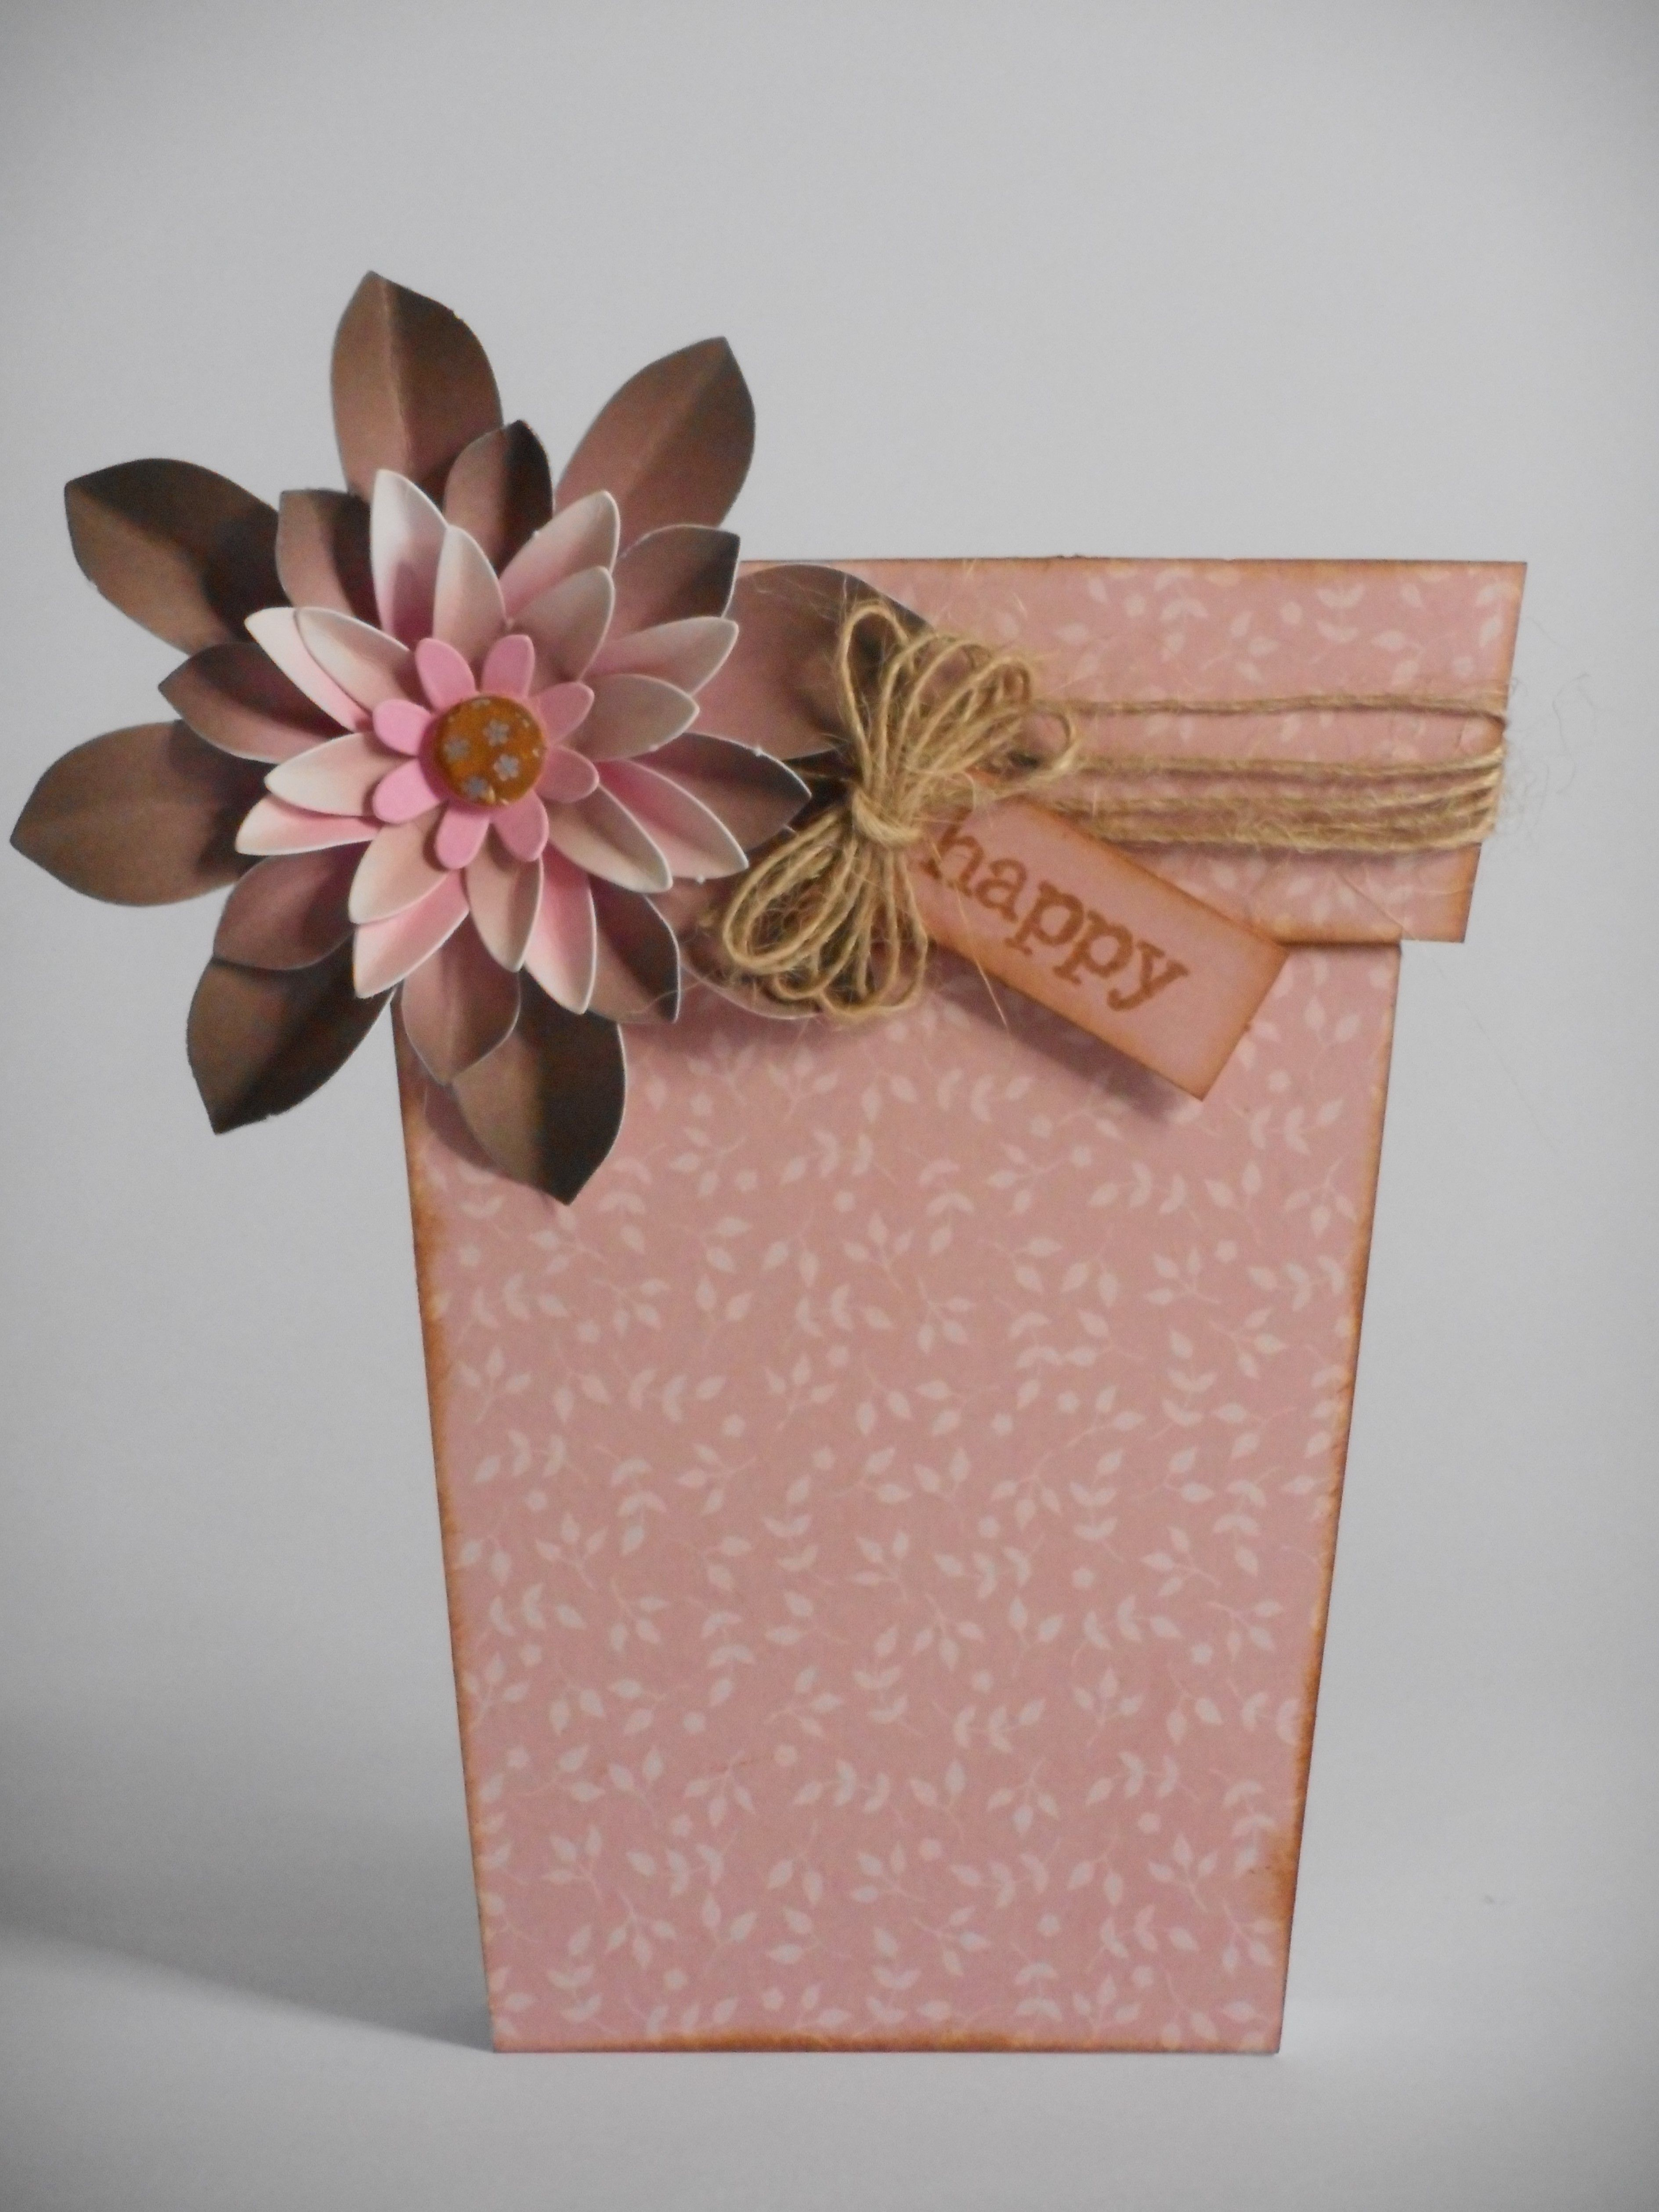 Flower Pot Card made by Phillipa Lewis using Craftwork Cards